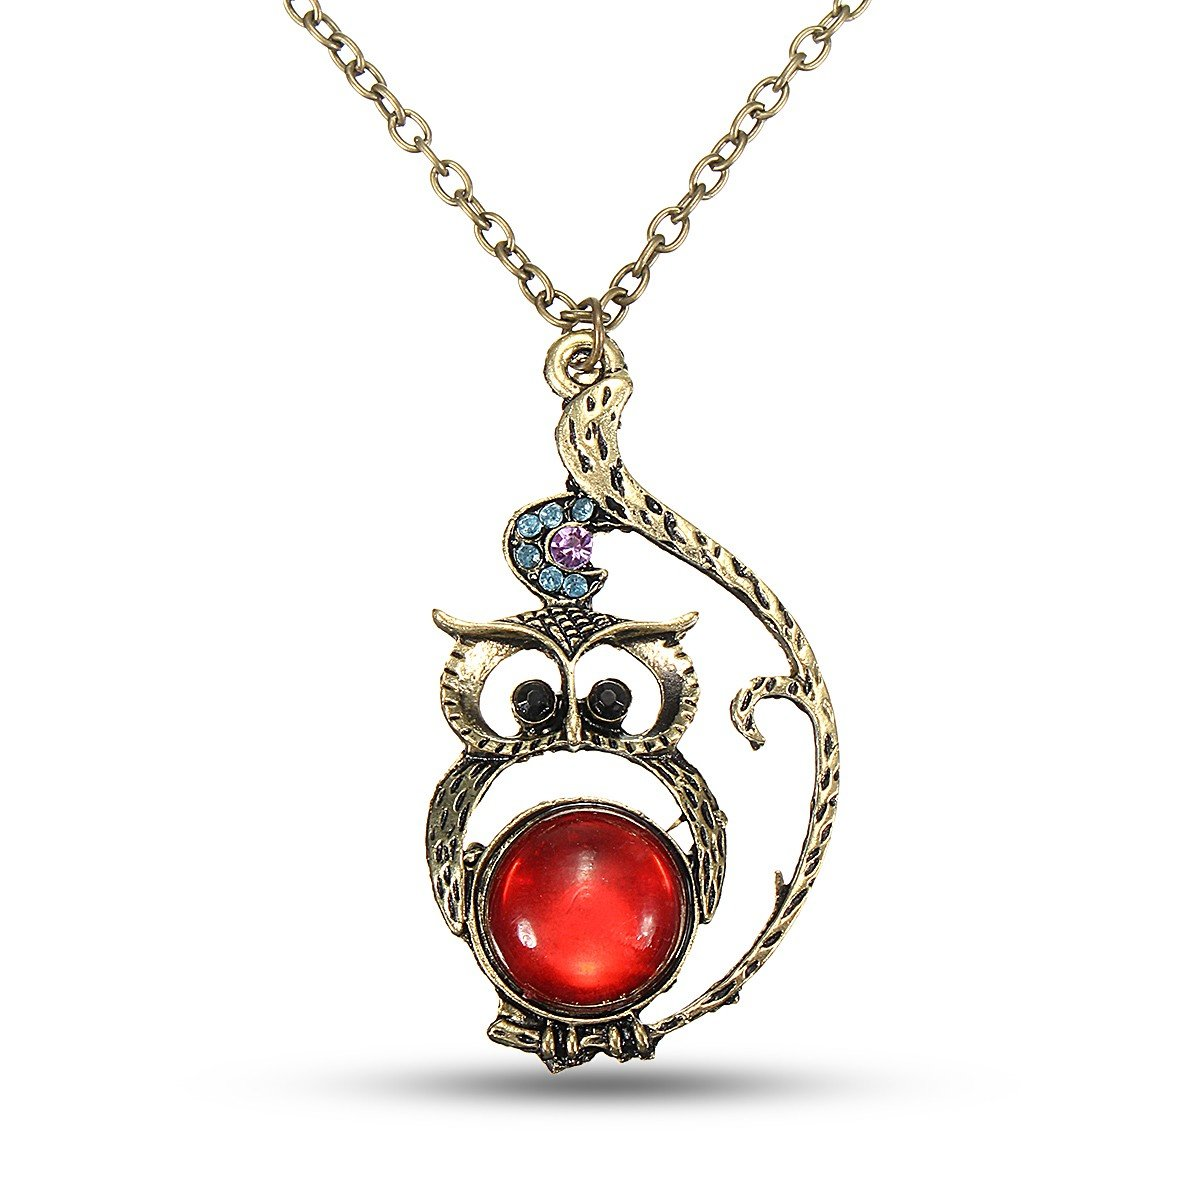 Vintage Red Crystal Belly Owl Pendant Necklace